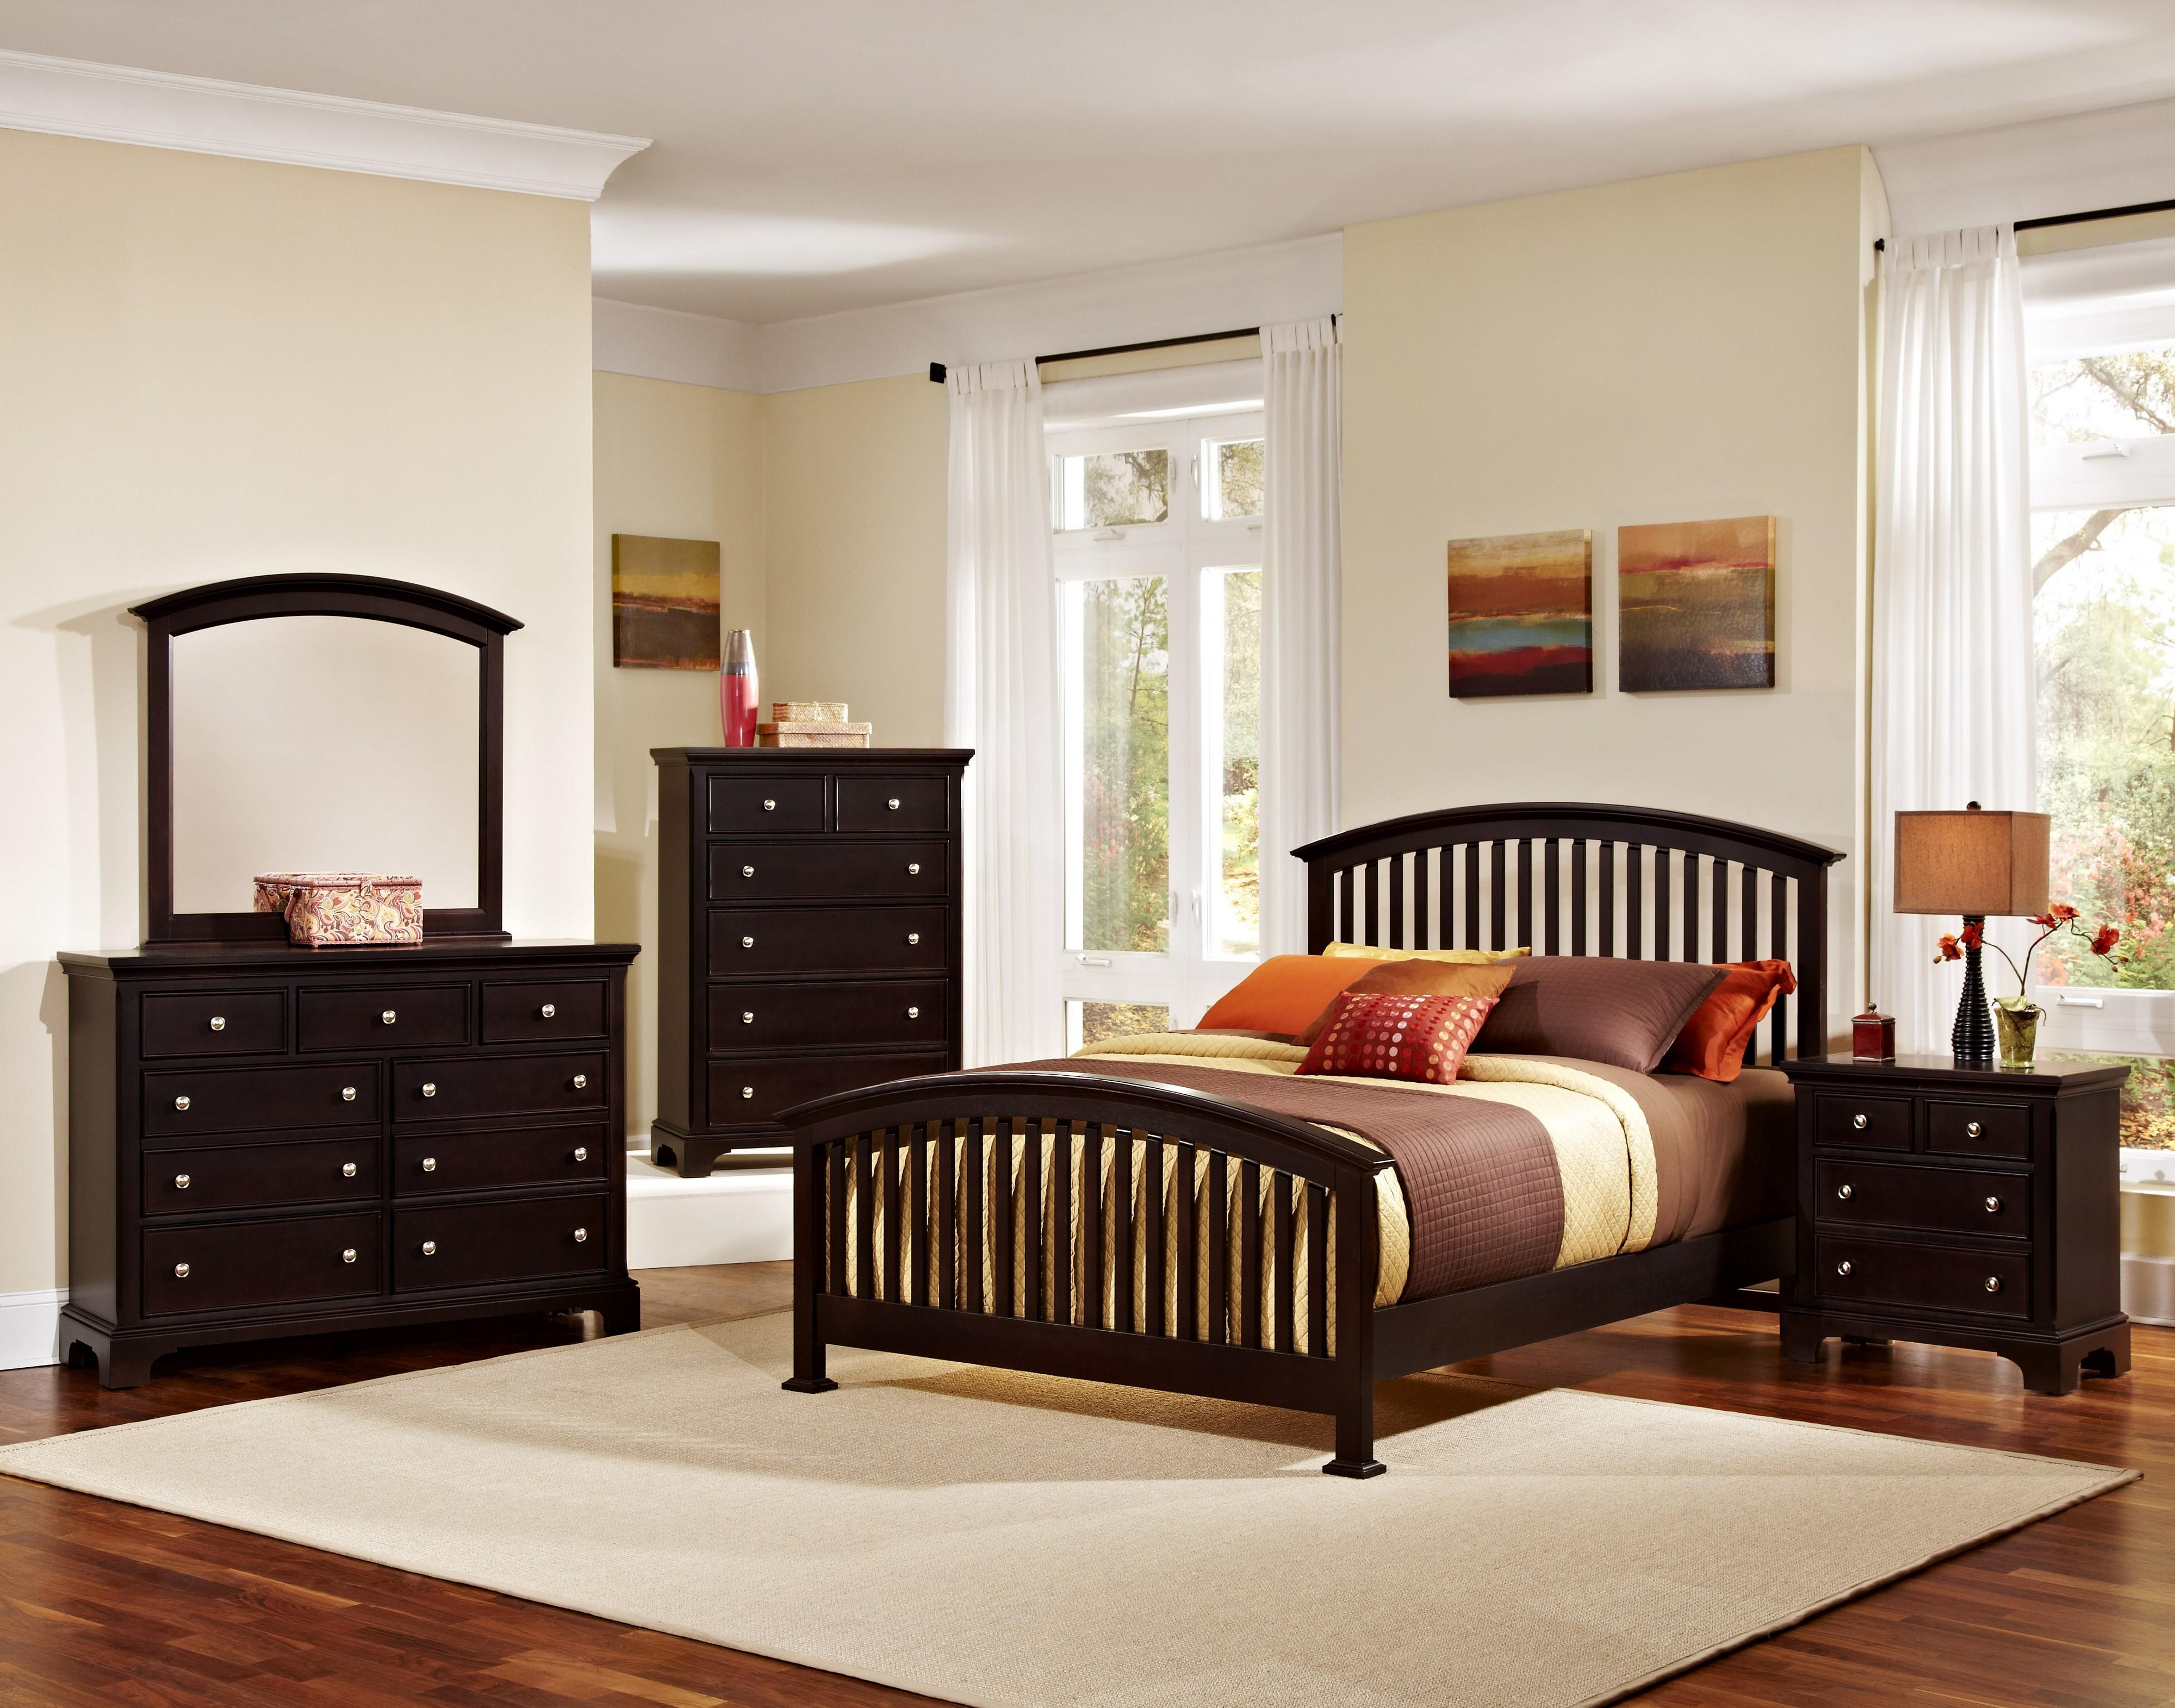 Vaughan Bassett Forsyth King Bedroom Group - Item Number: BB76 K Bedroom Group 3